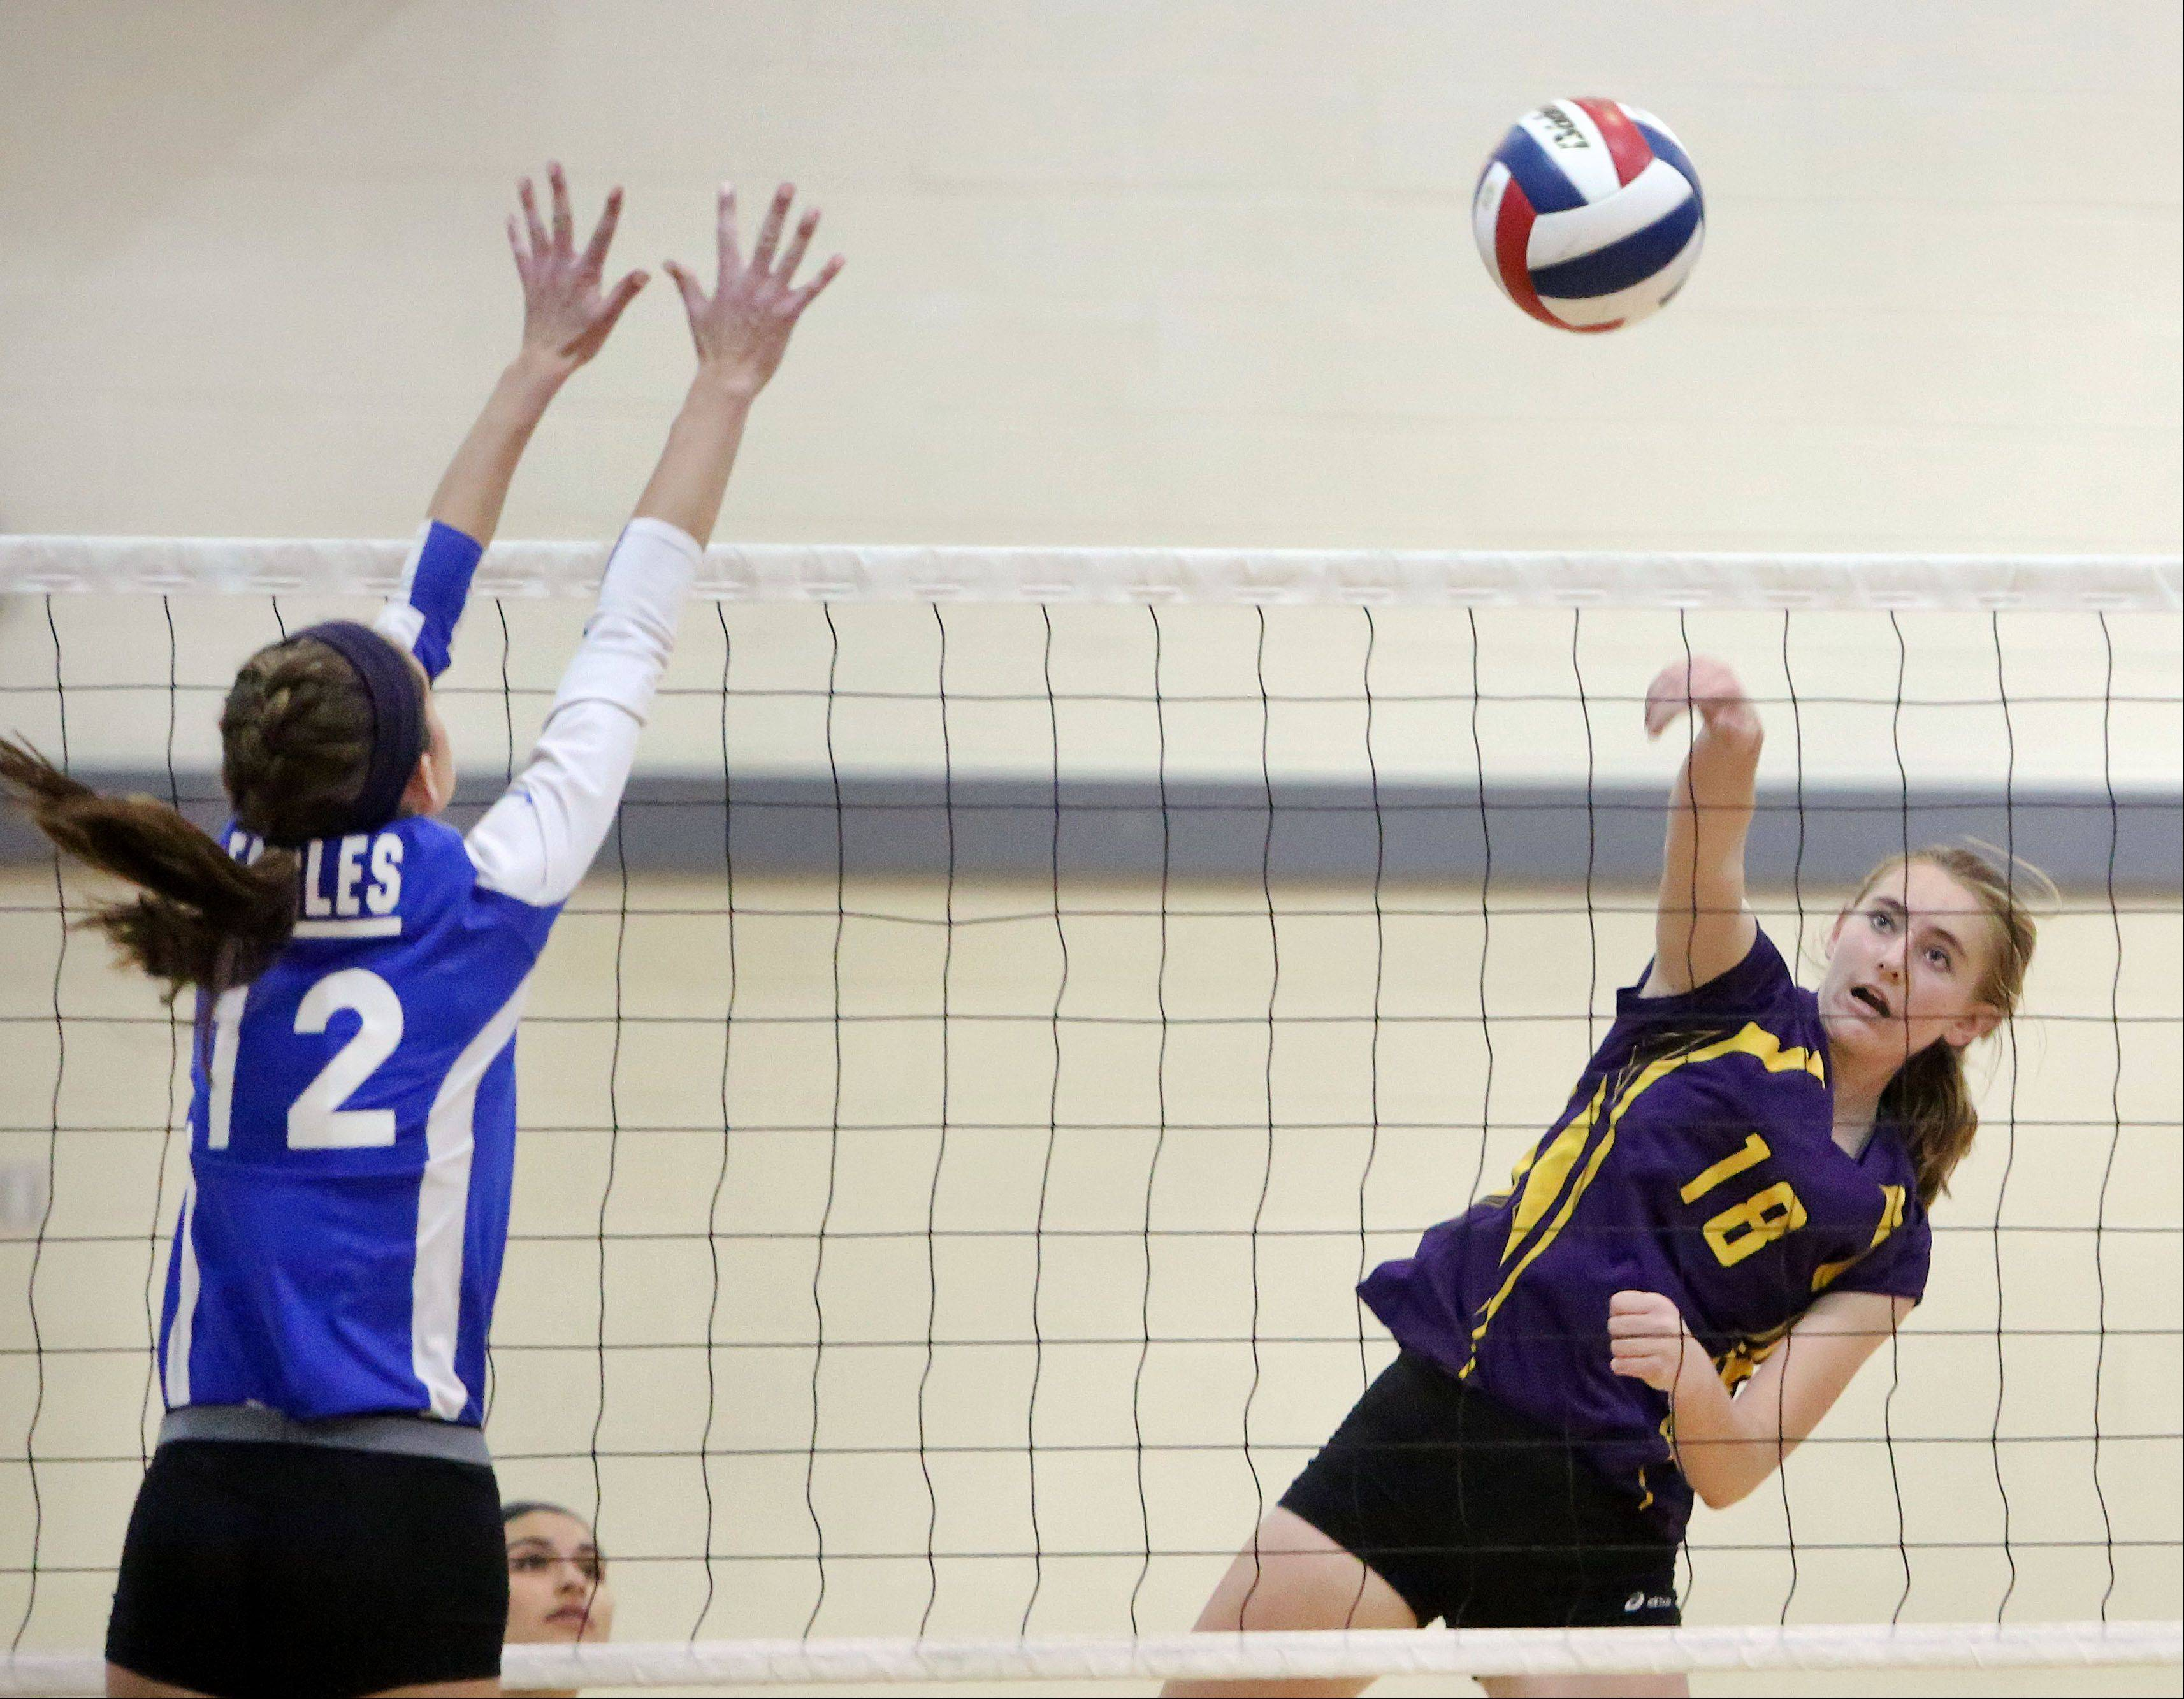 Wauconda's Leanne Sakowicz, right, spikes one at Haley Halberg of Lakes on Wednesday night at Lakes.